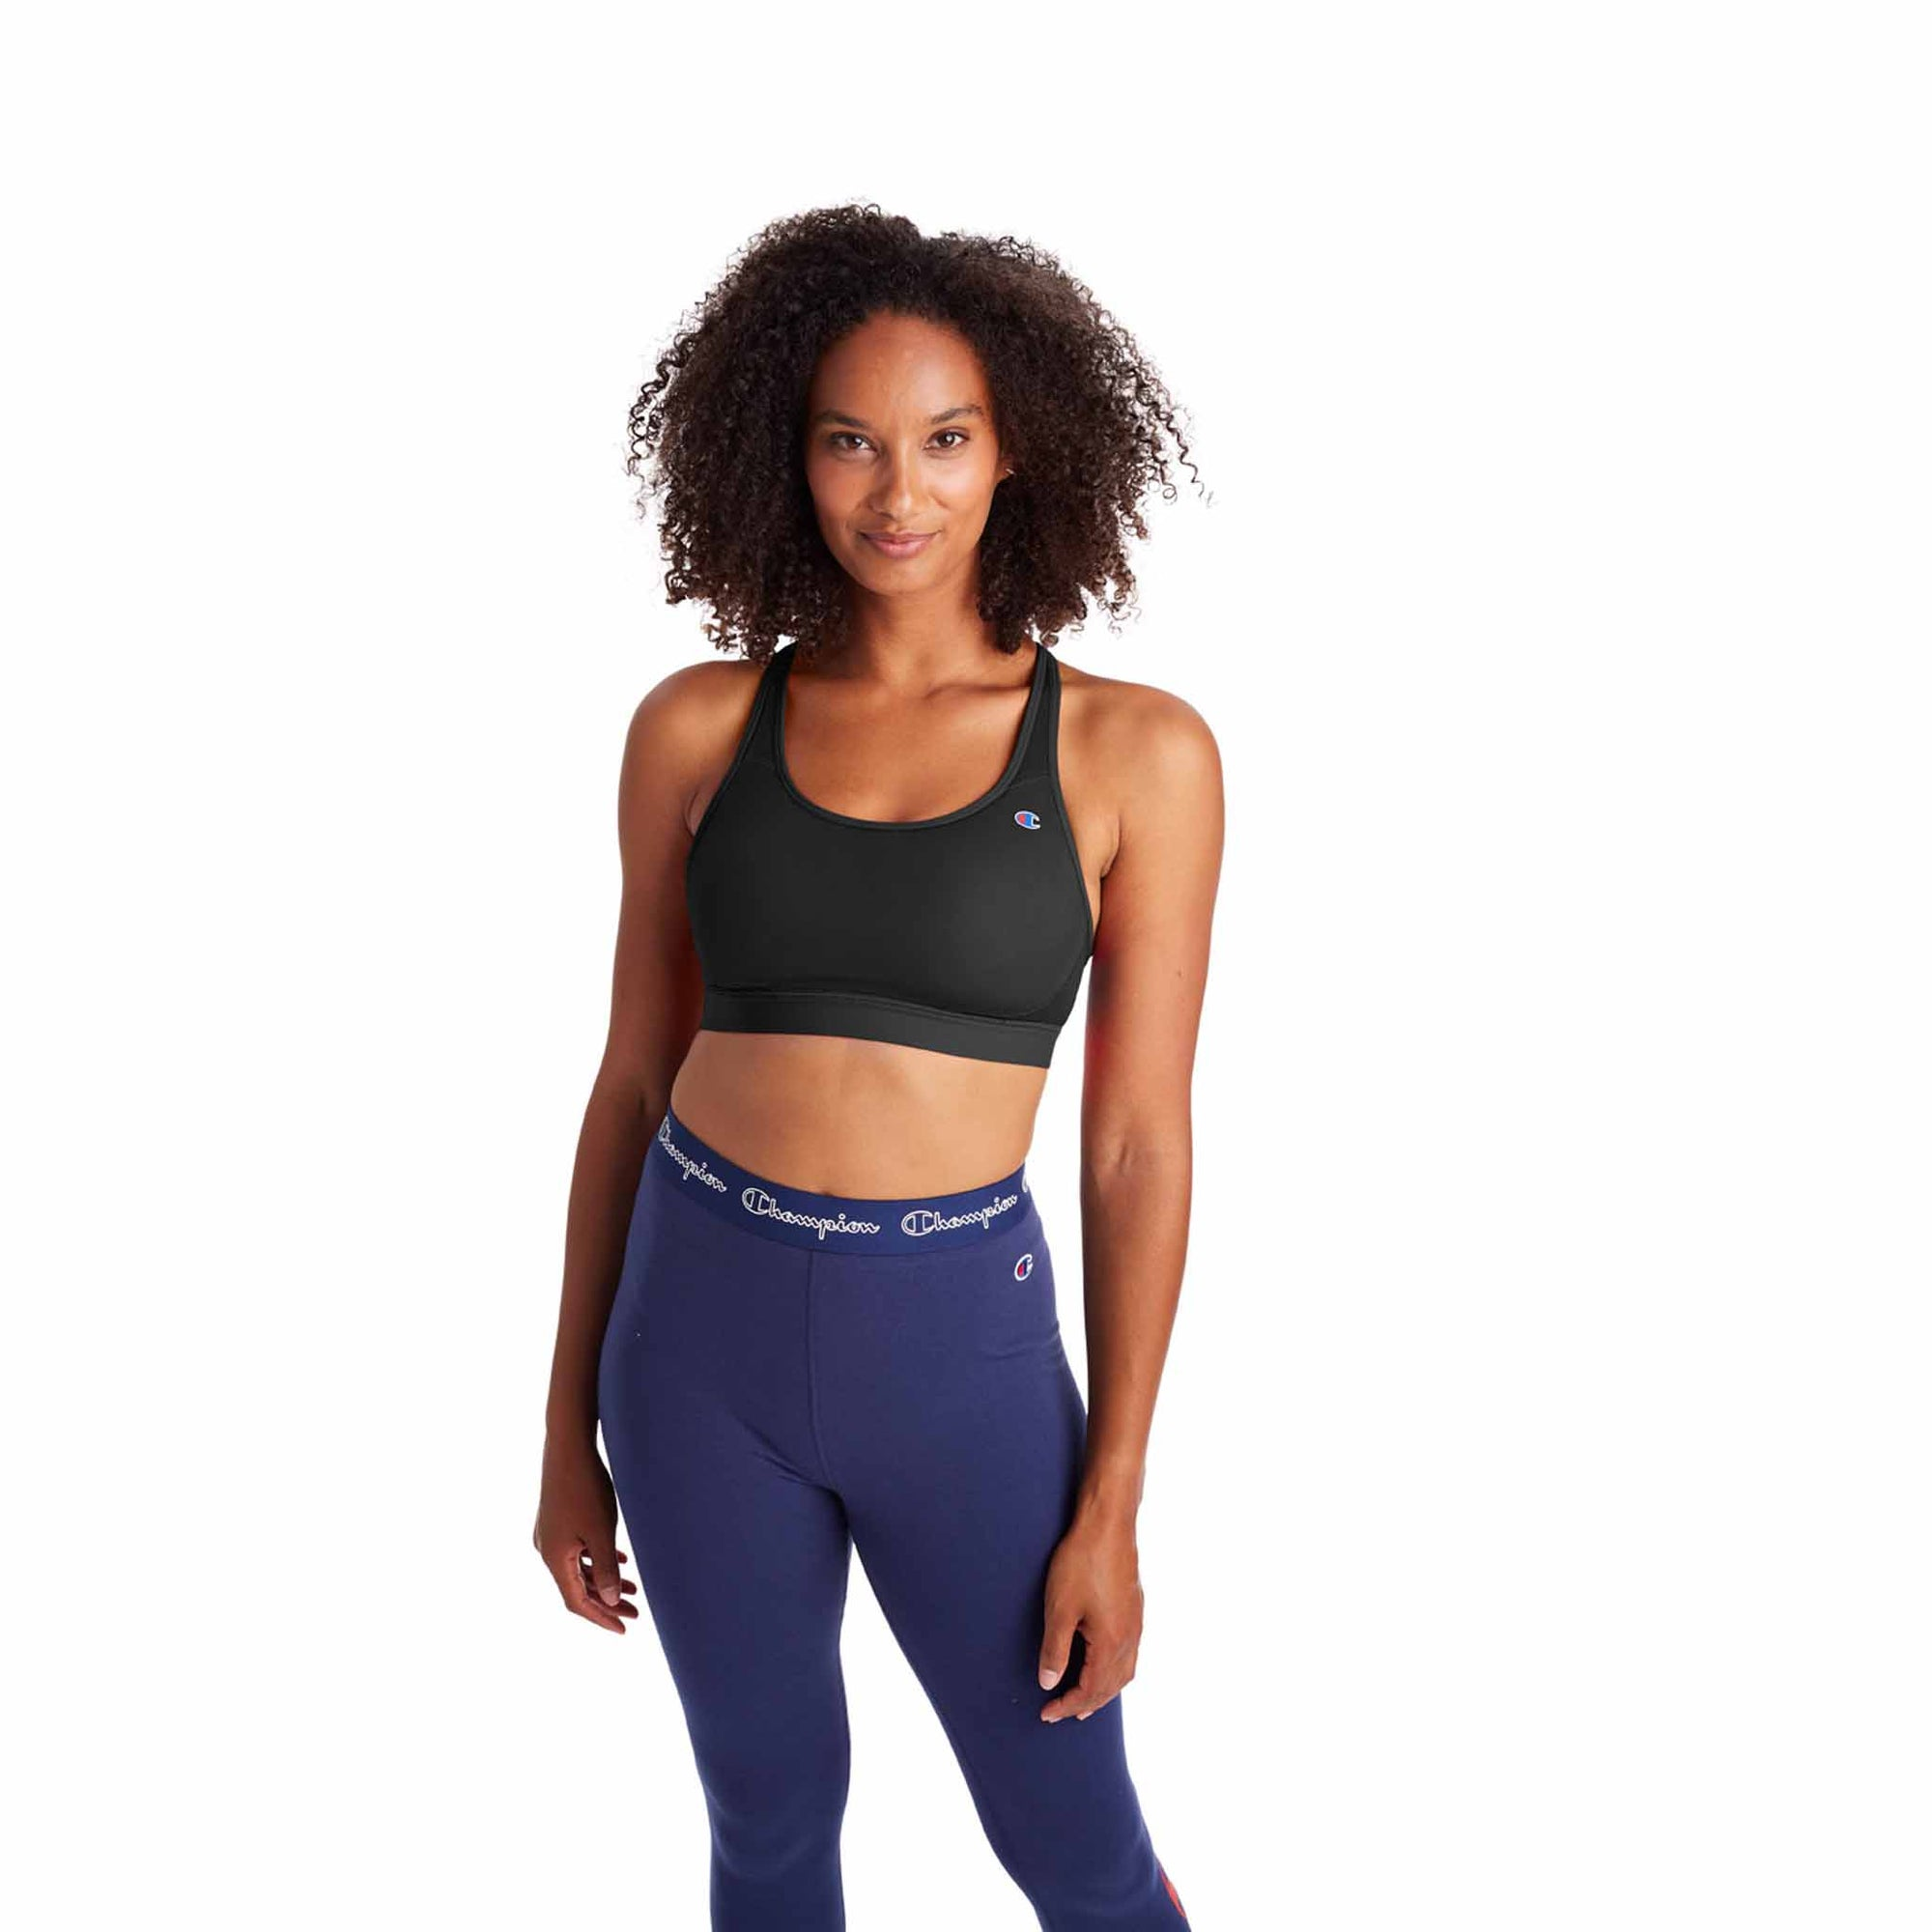 Champion soutien-gorge sport The Absolute Max 2.0 avant